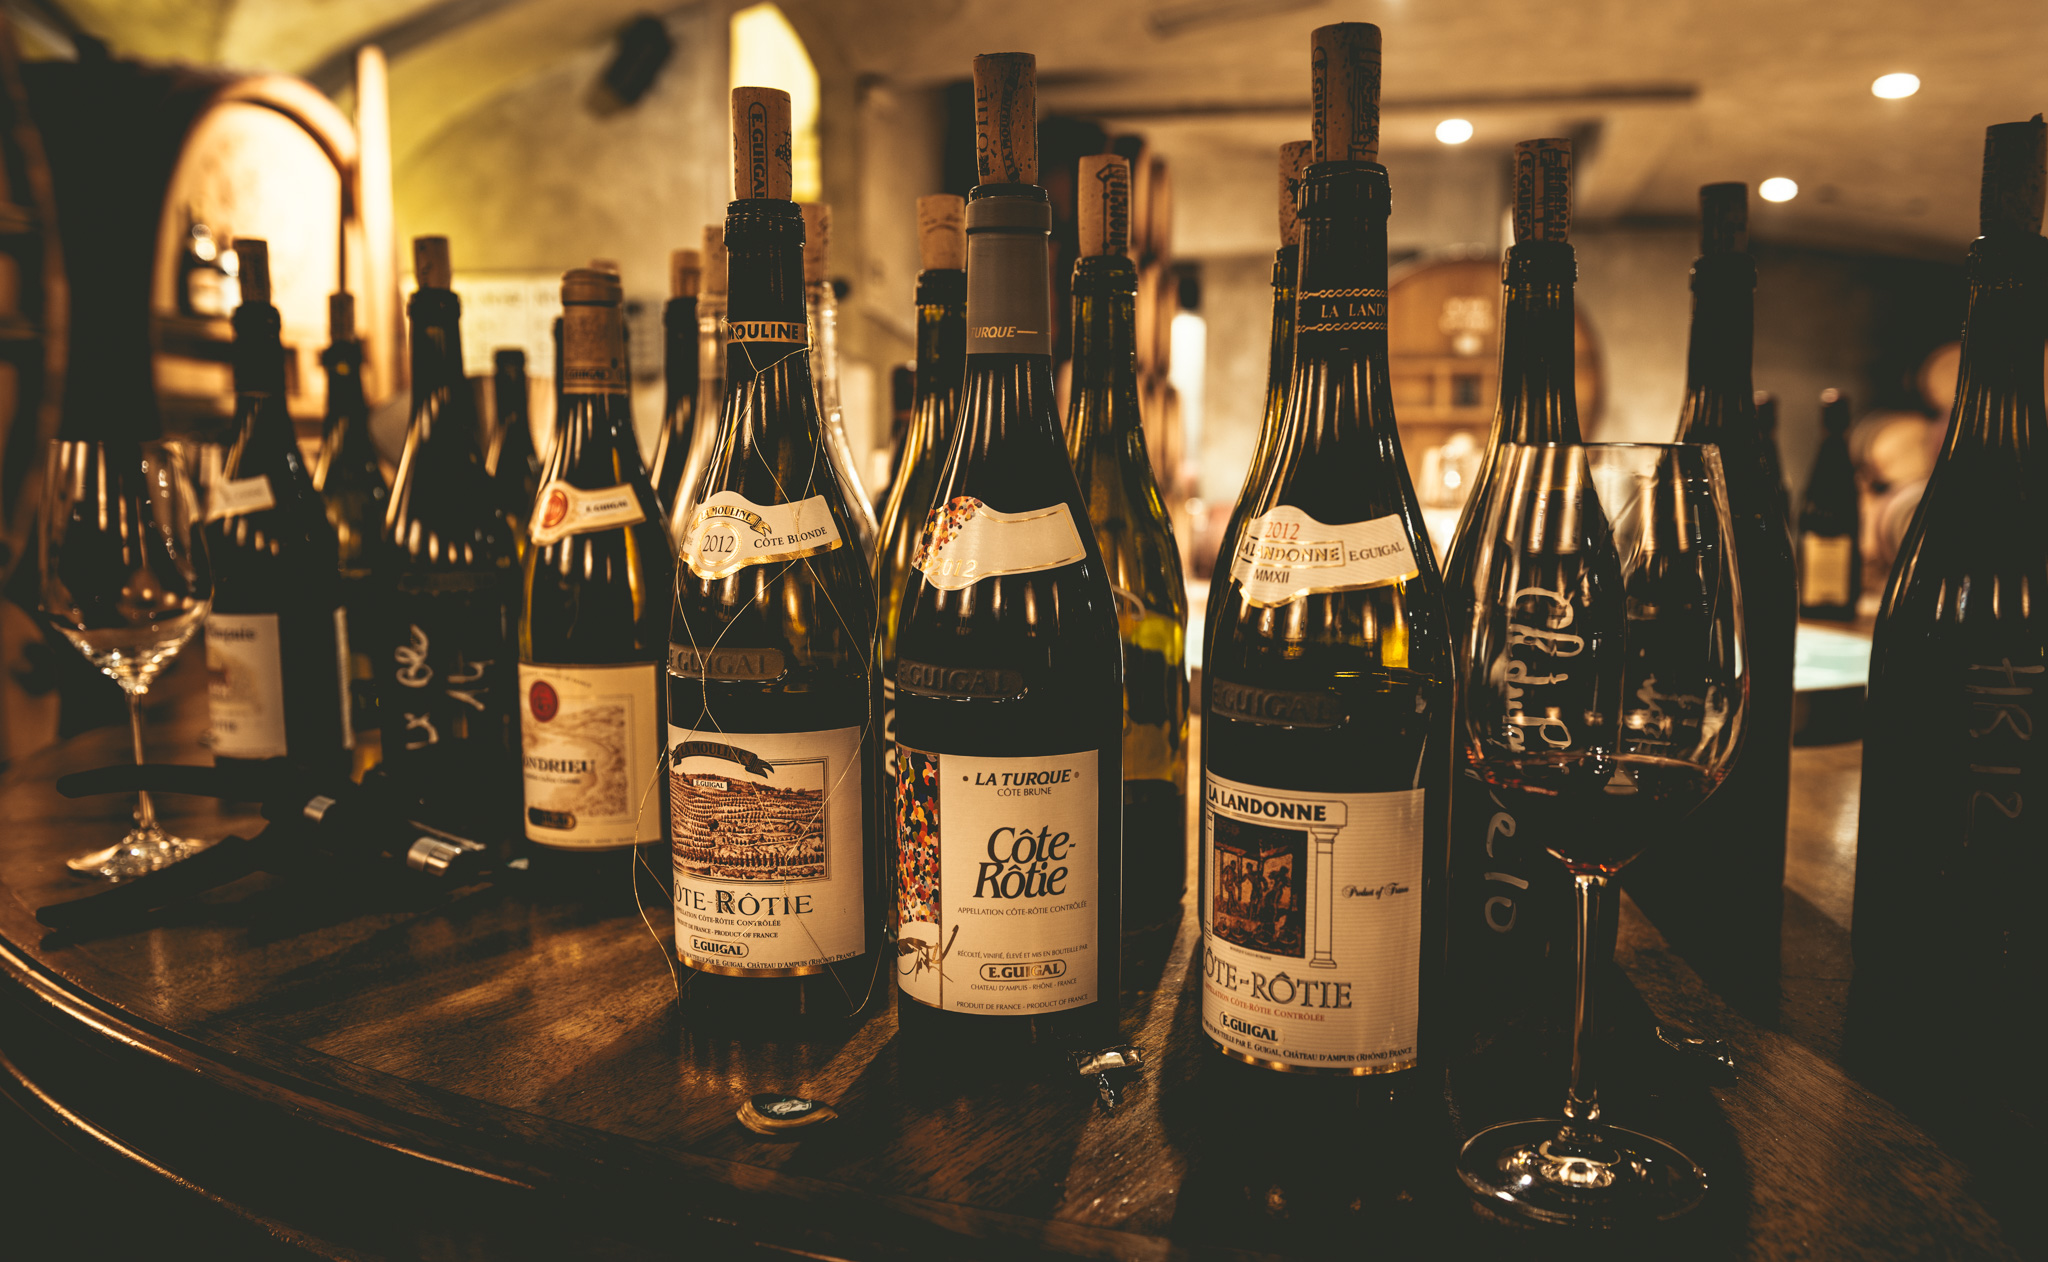 France : Northern Rhone : Reference point wines at Guigal